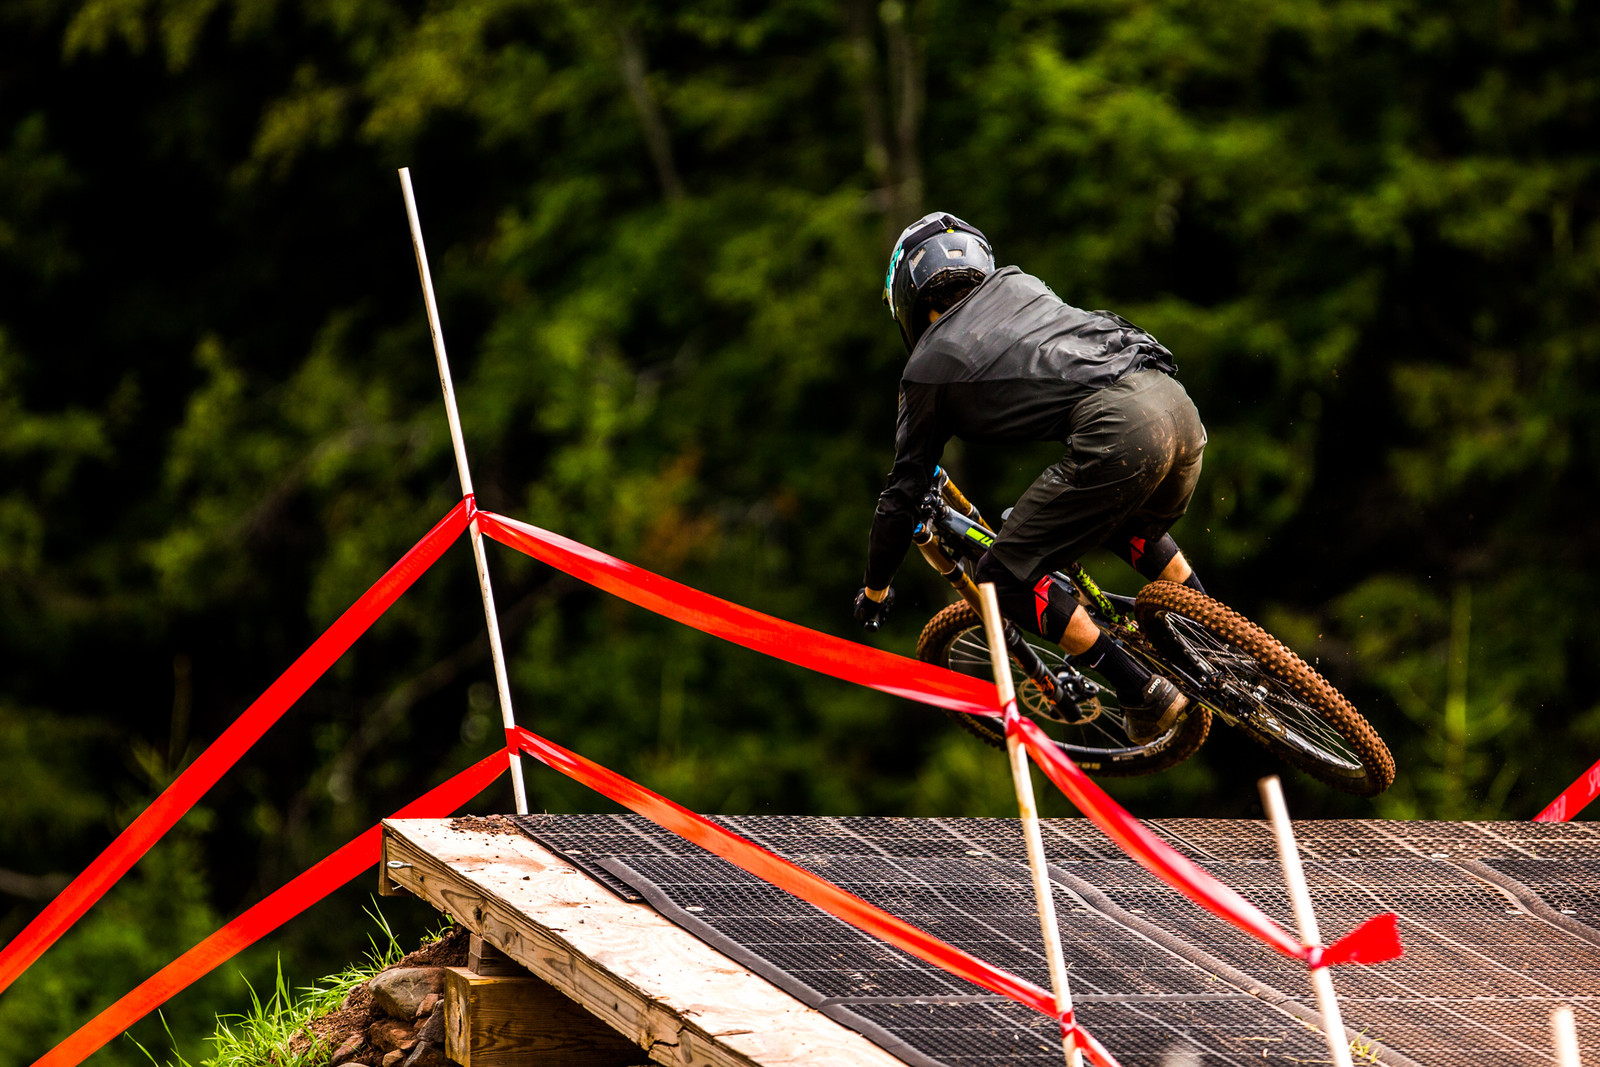 Michael Kane - RACE DAY GALLERY - 2017 Pro GRT, Windham, NY - Mountain Biking Pictures - Vital MTB